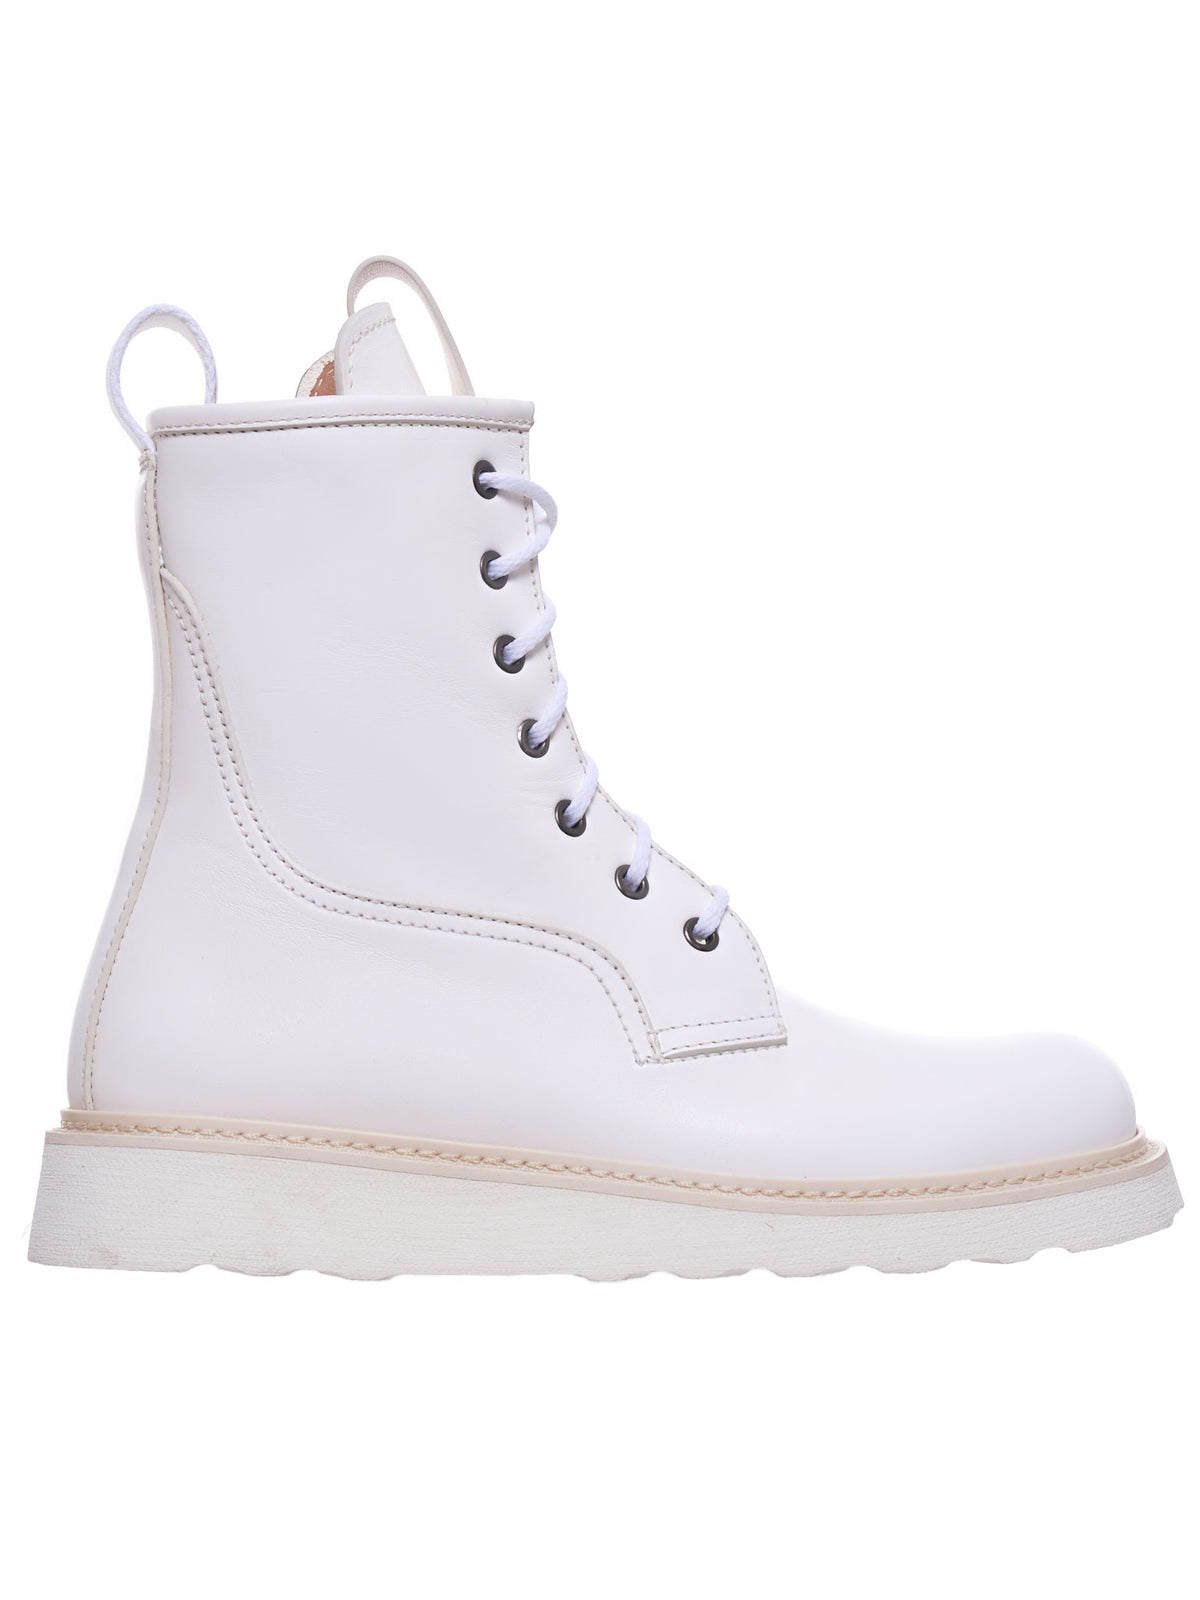 Lace-Up Boots (578289VIFH0-WHITE)